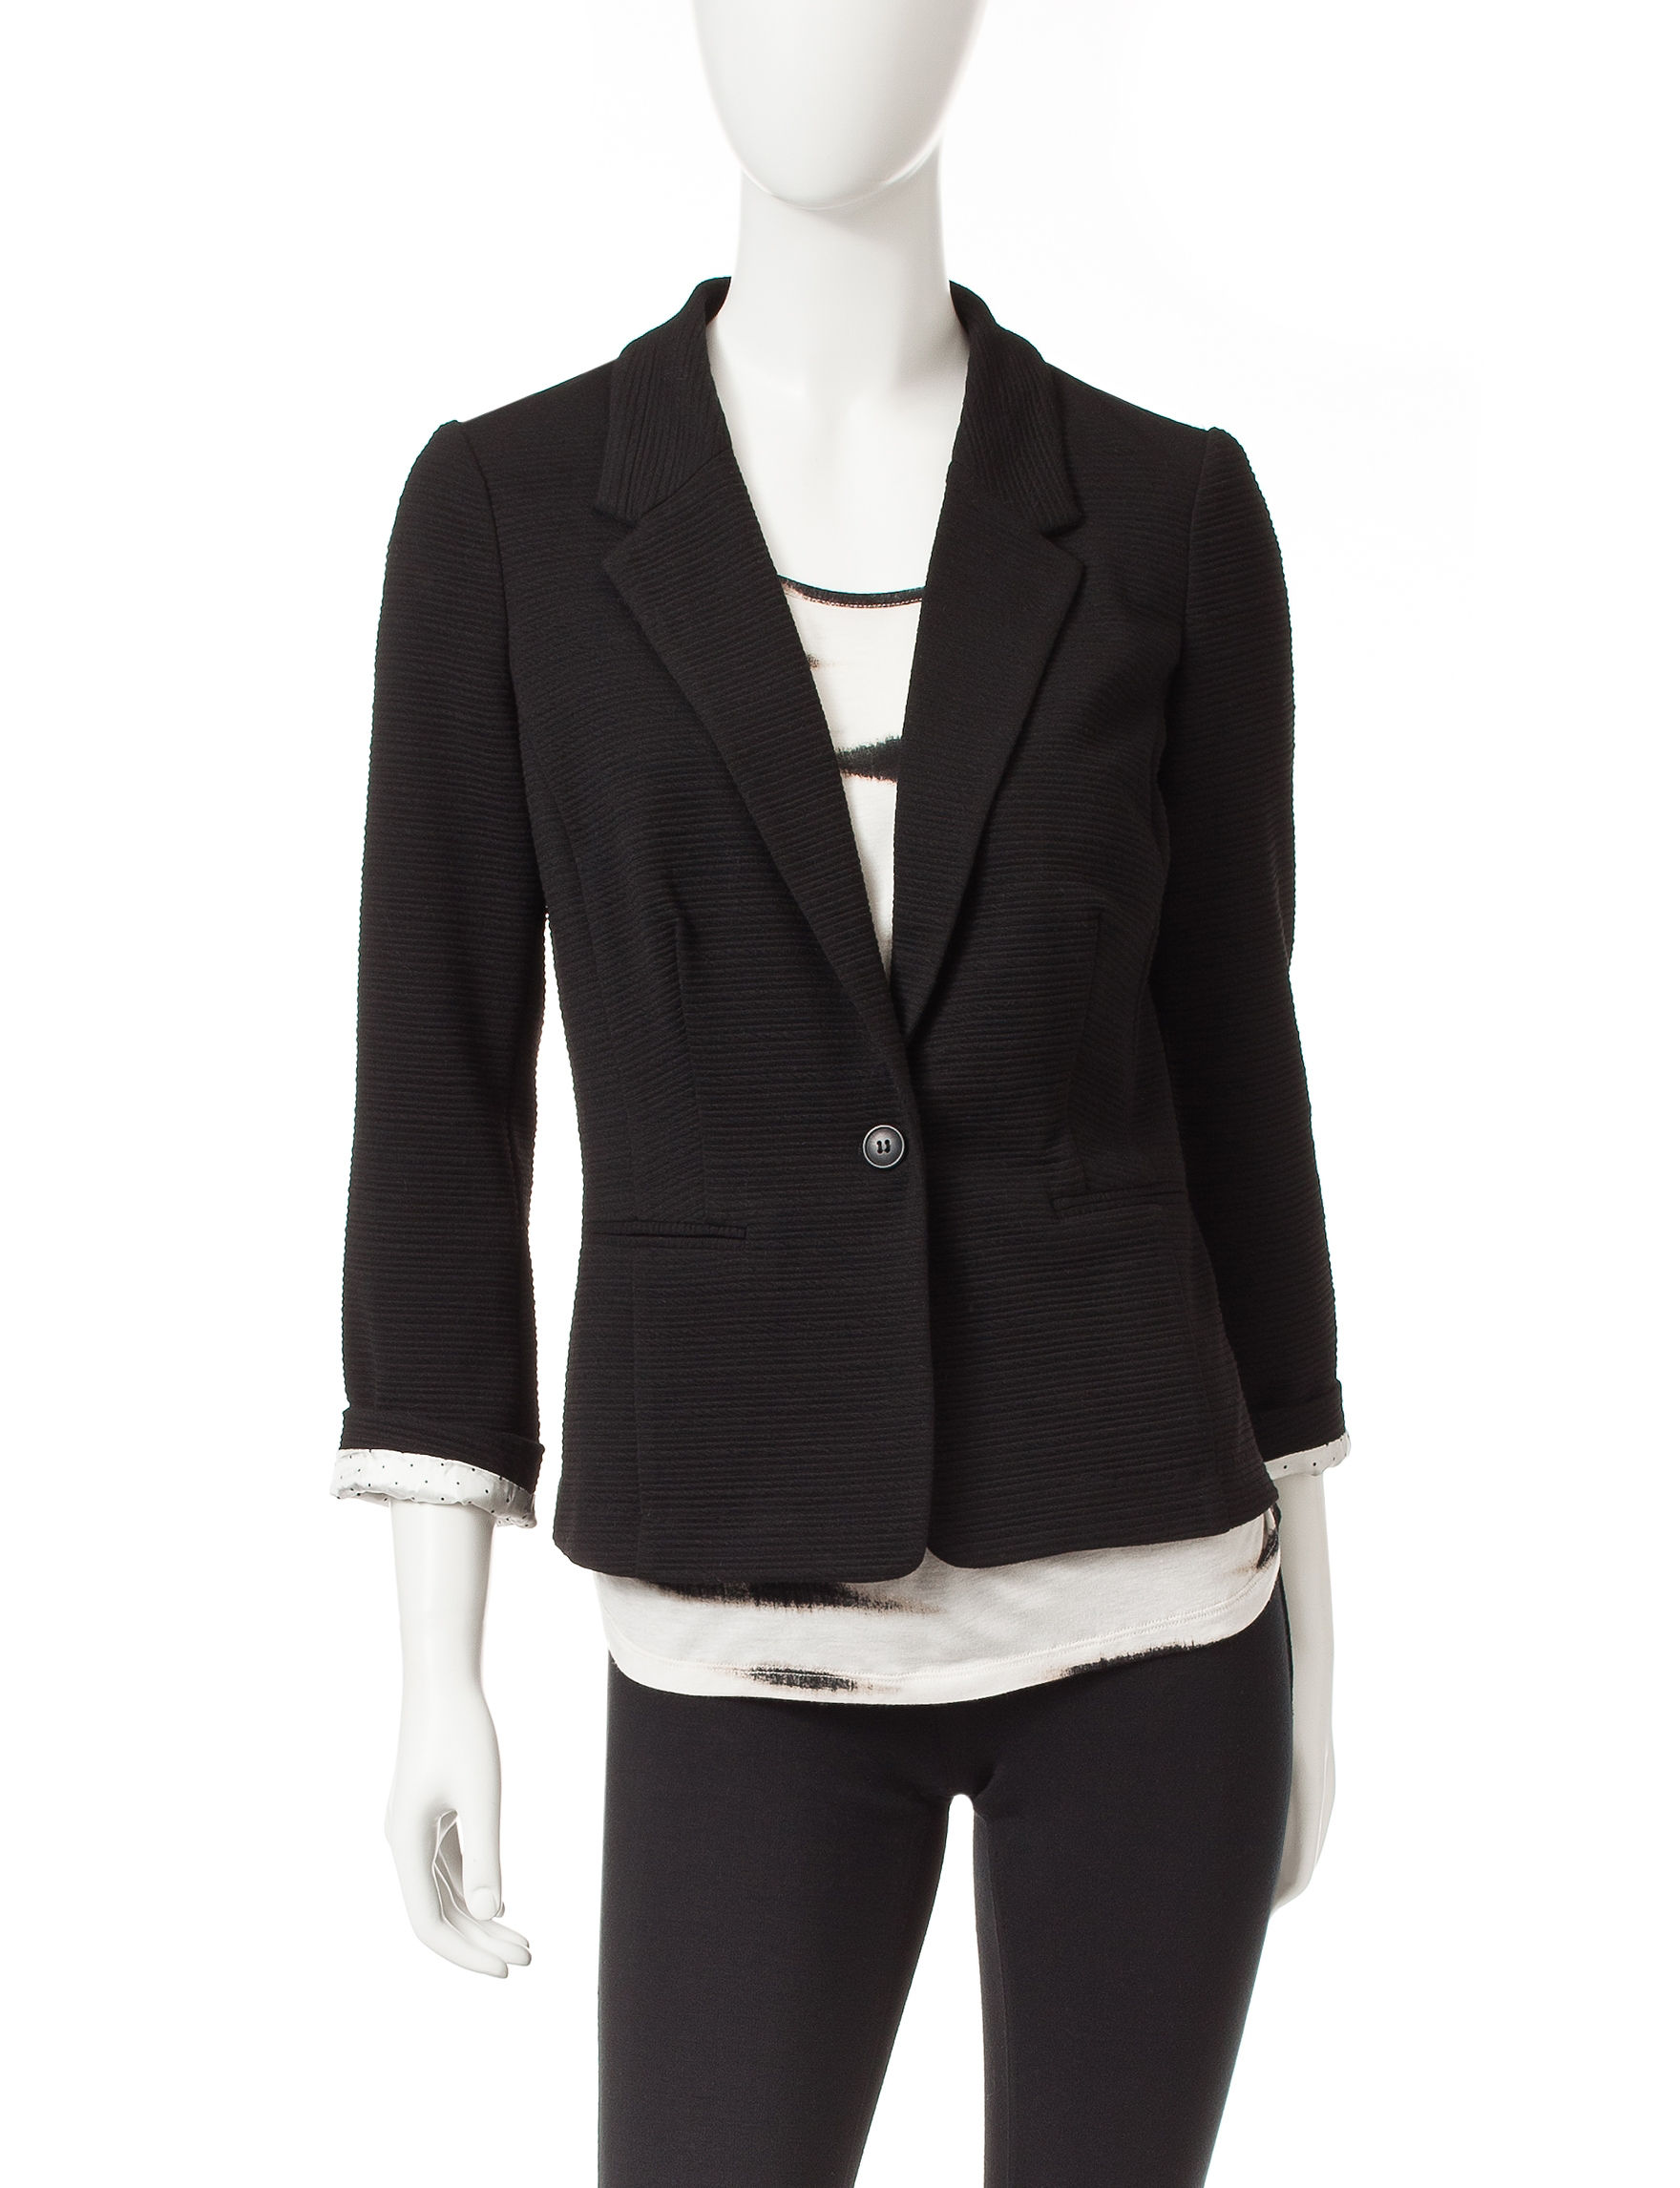 Kensie Black Lightweight Jackets & Blazers